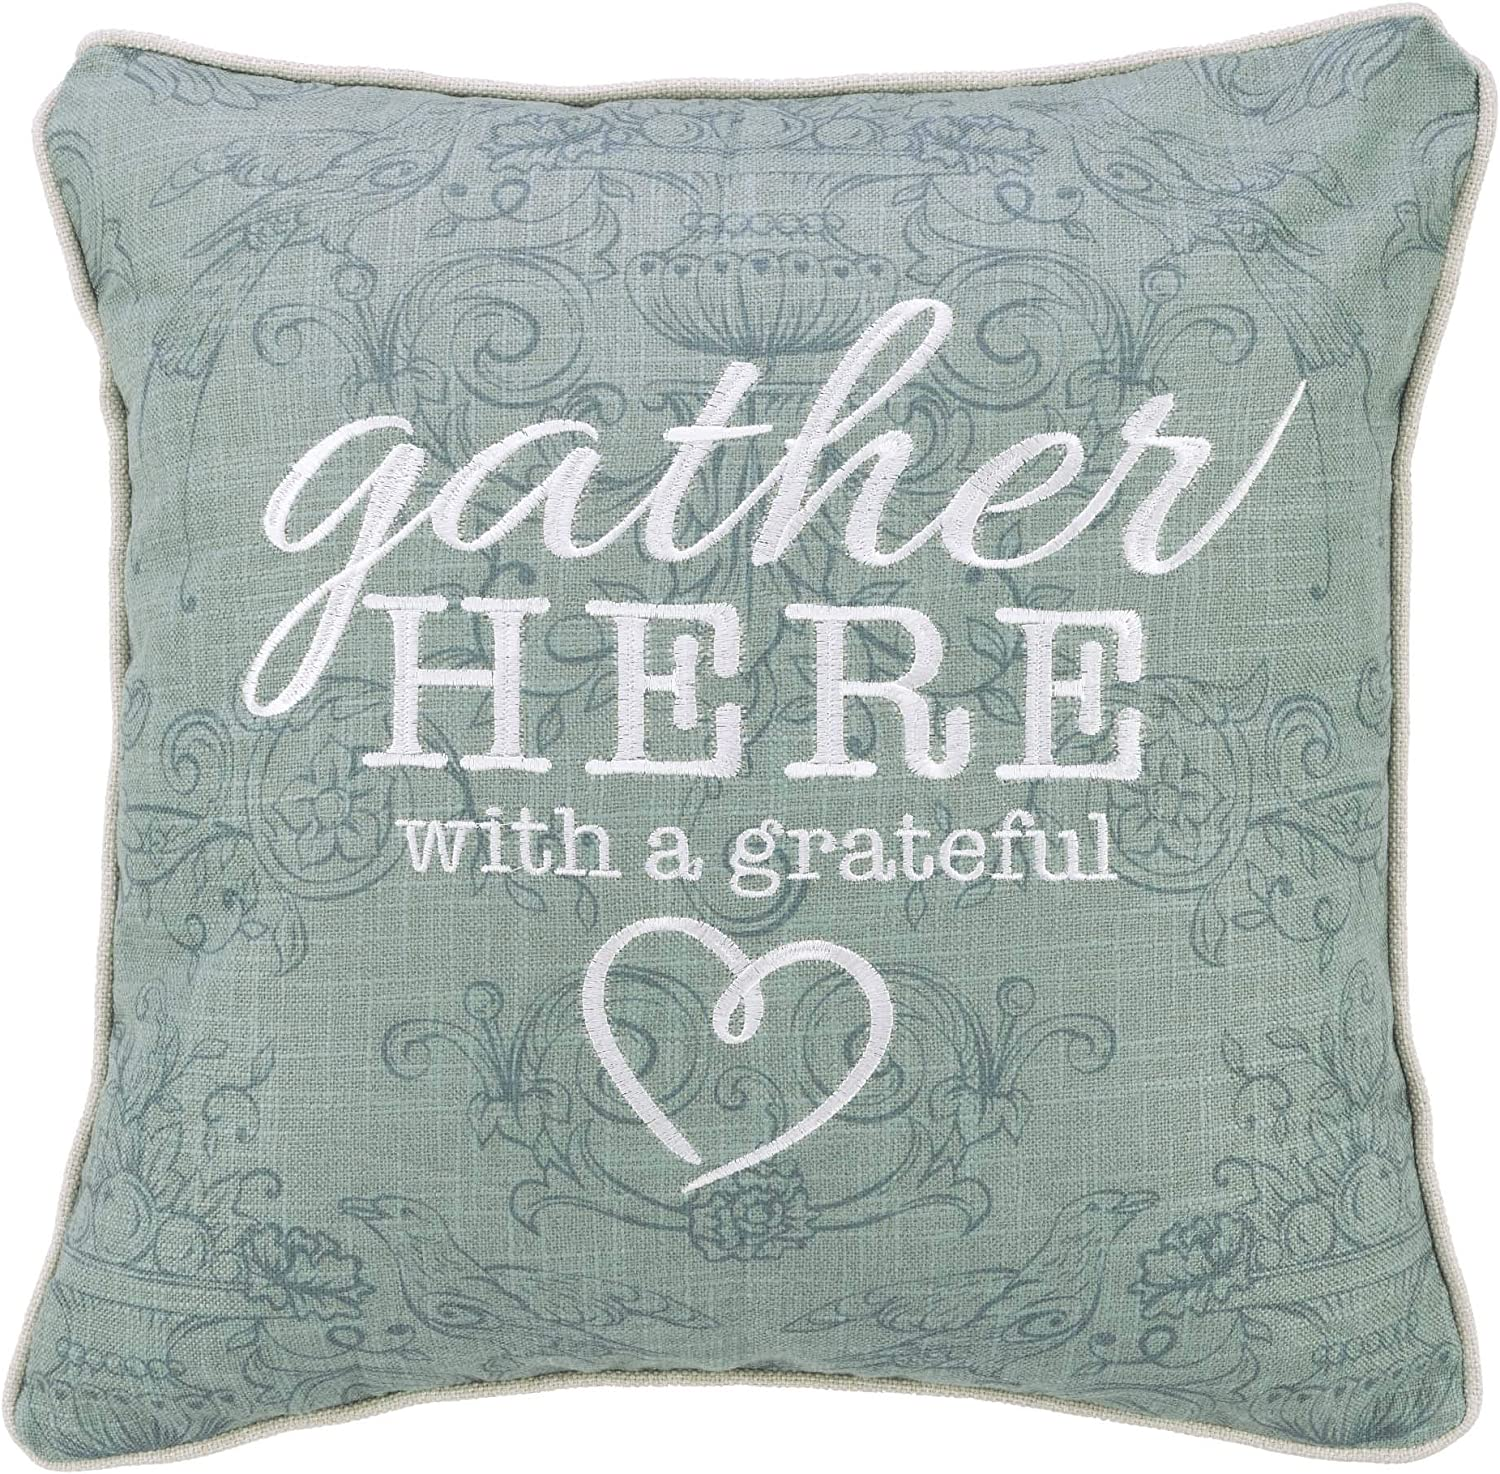 Christian Art Gifts Decorative Throw Pillow | Gather Here with A Grateful Heart| Embroidered Green Couch Pillow and Inspirational Home Decor, 18 x 18